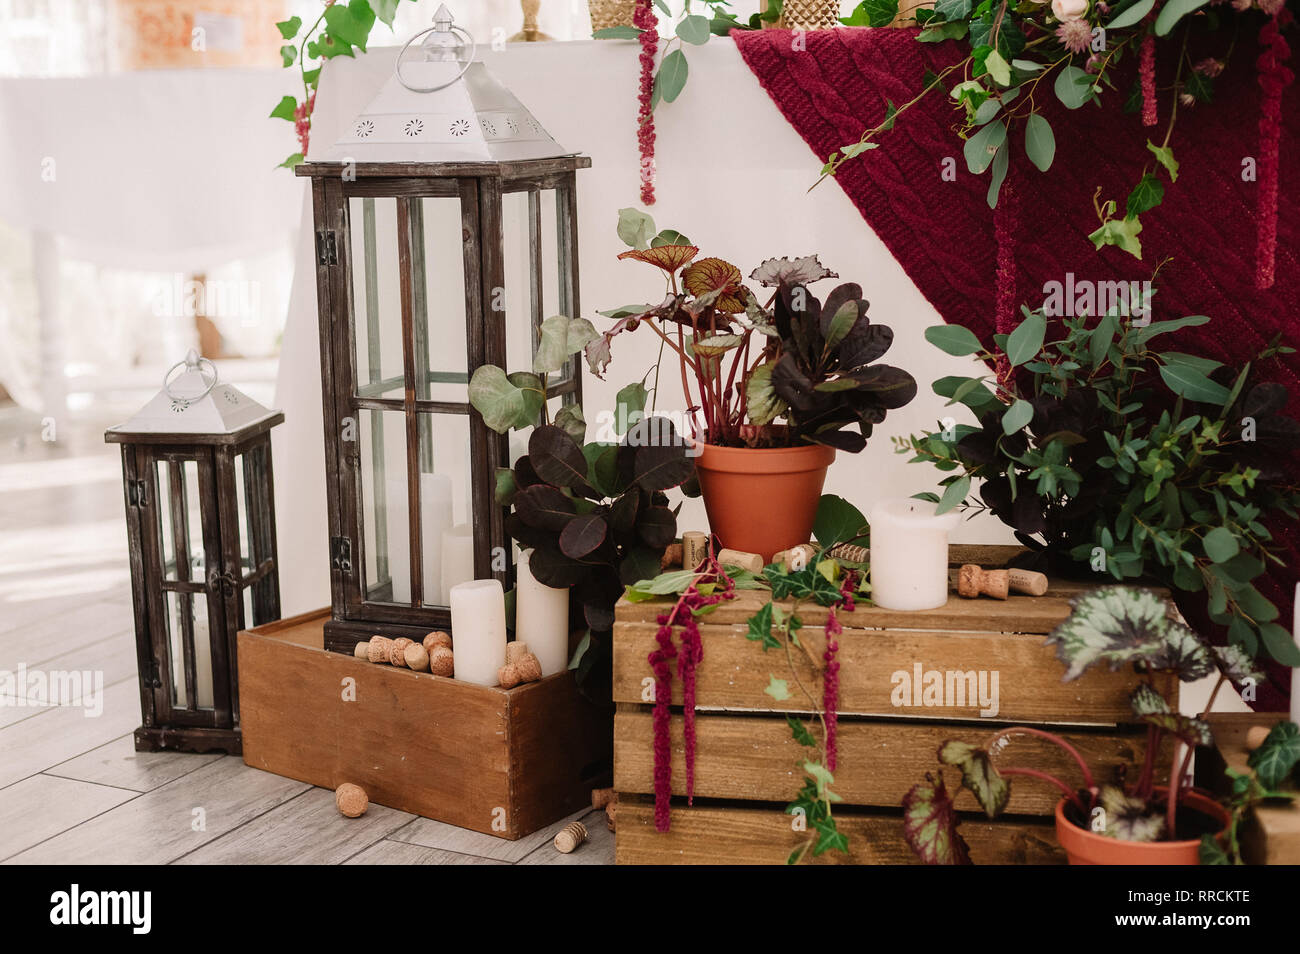 Wedding Decoration Of The Restaurant In Rustic Style Stock Photo Alamy